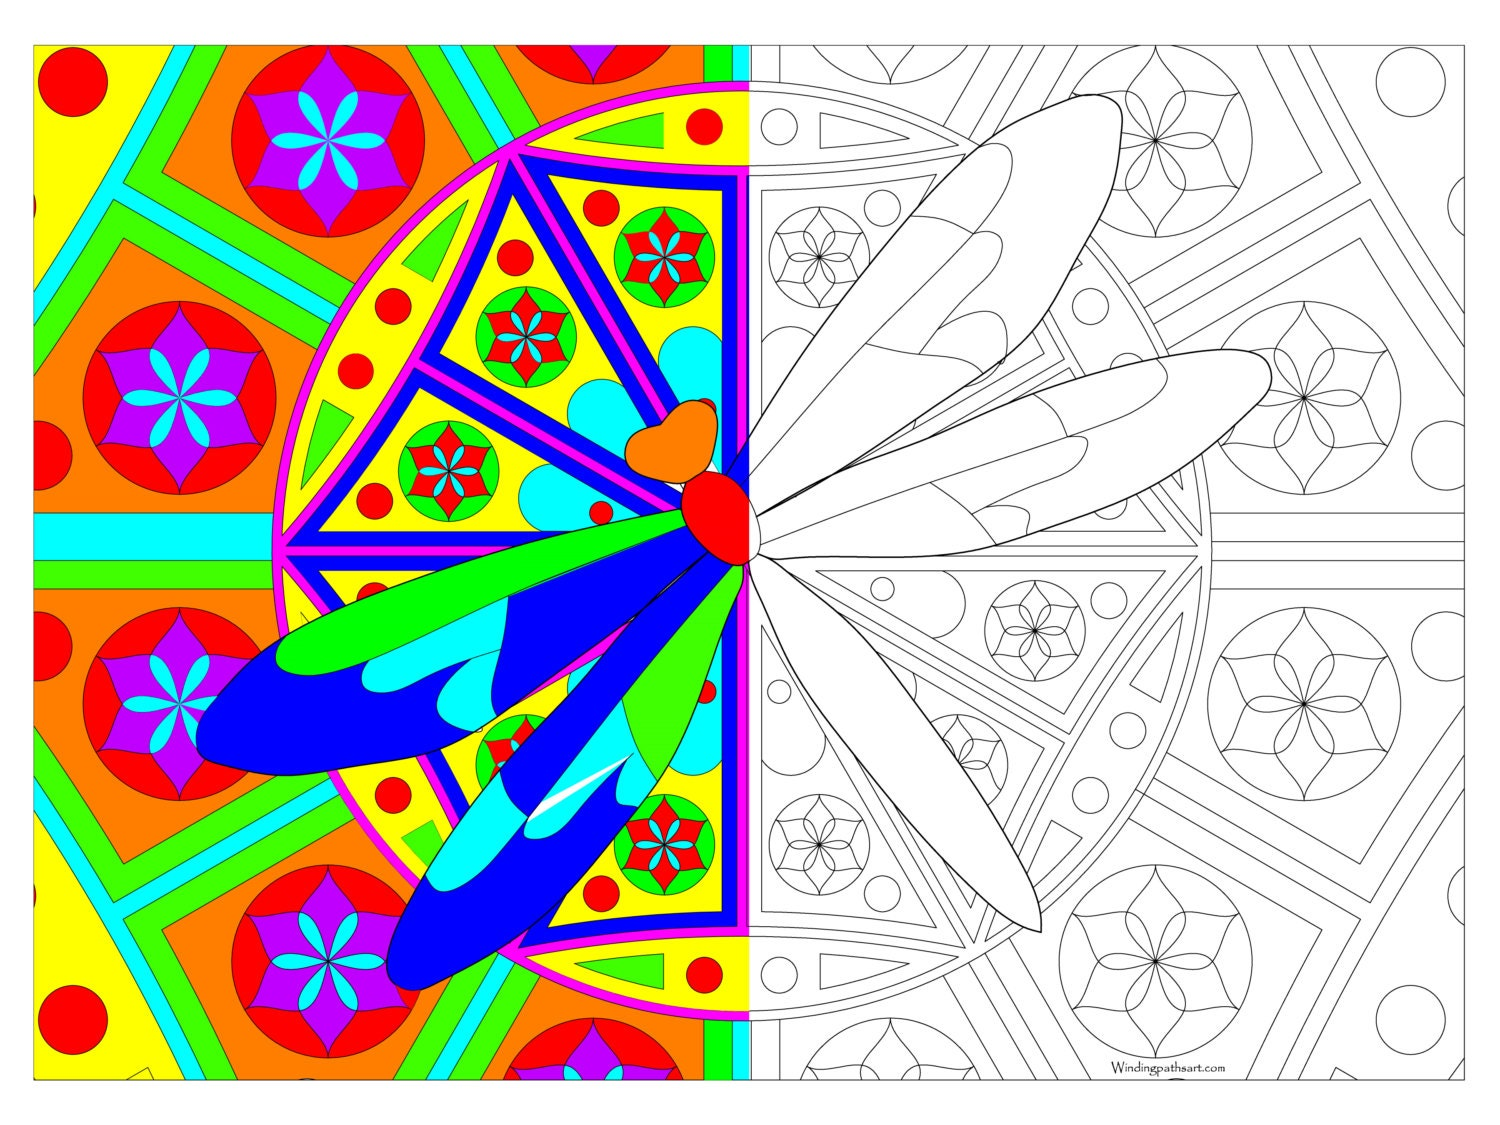 Dragonfly Planner Giant Coloring Poster Dragonfly 32 Quot X 24 Quot From